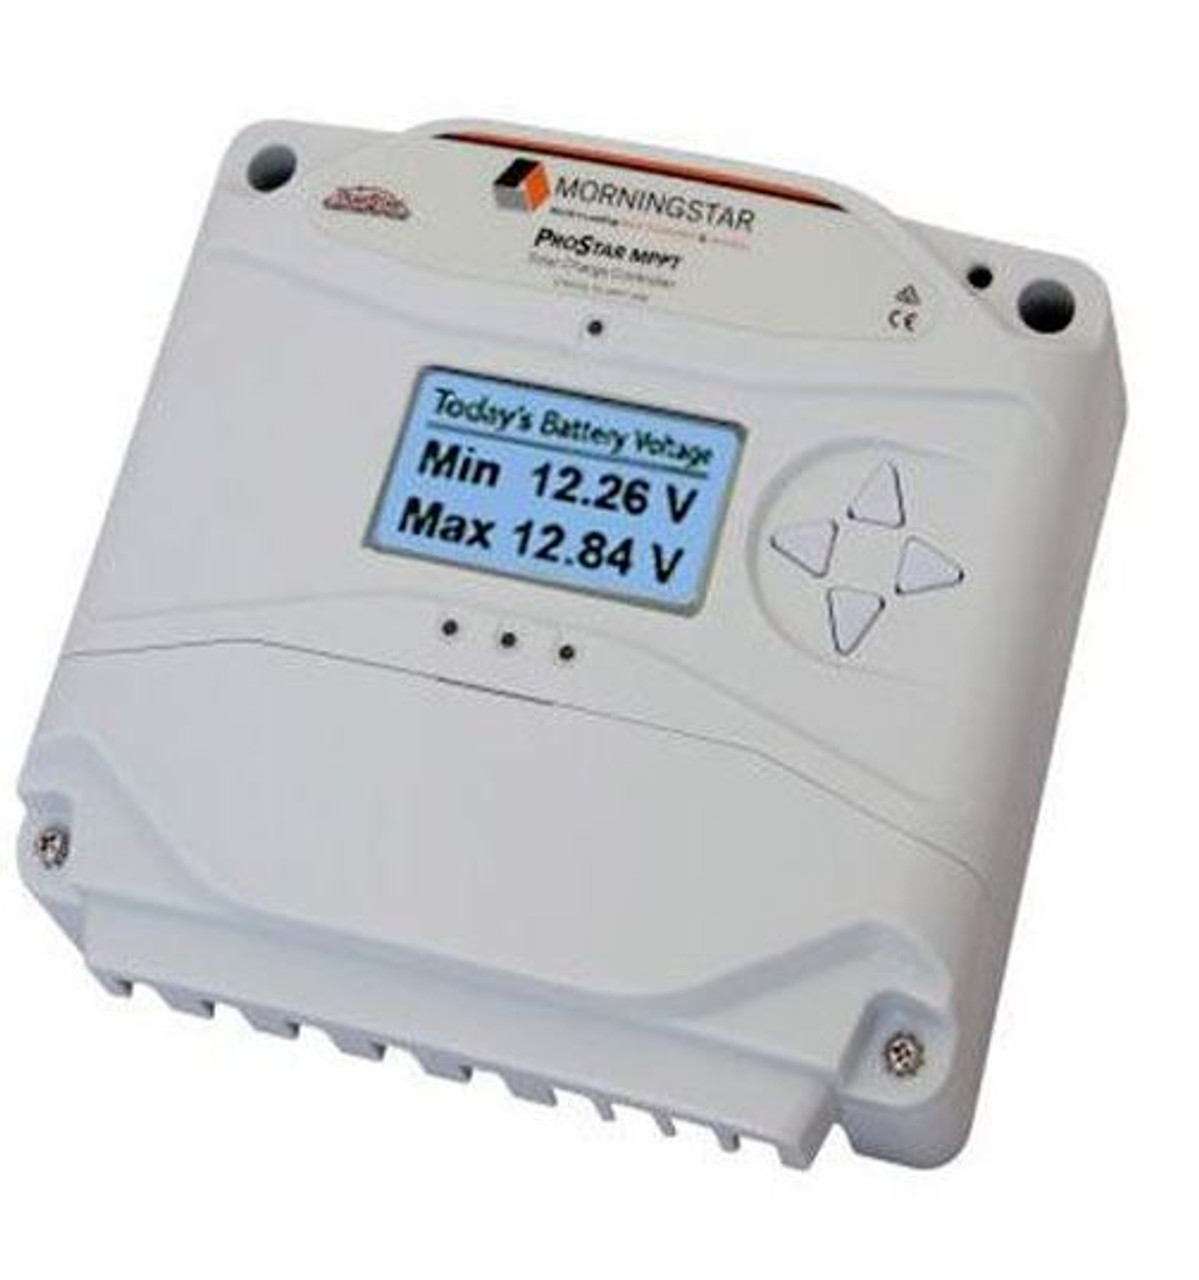 Morningstar PS-MPPT-25M ProStar MPPT Solar Charge Controller 12/24V, 25A with Meter Display